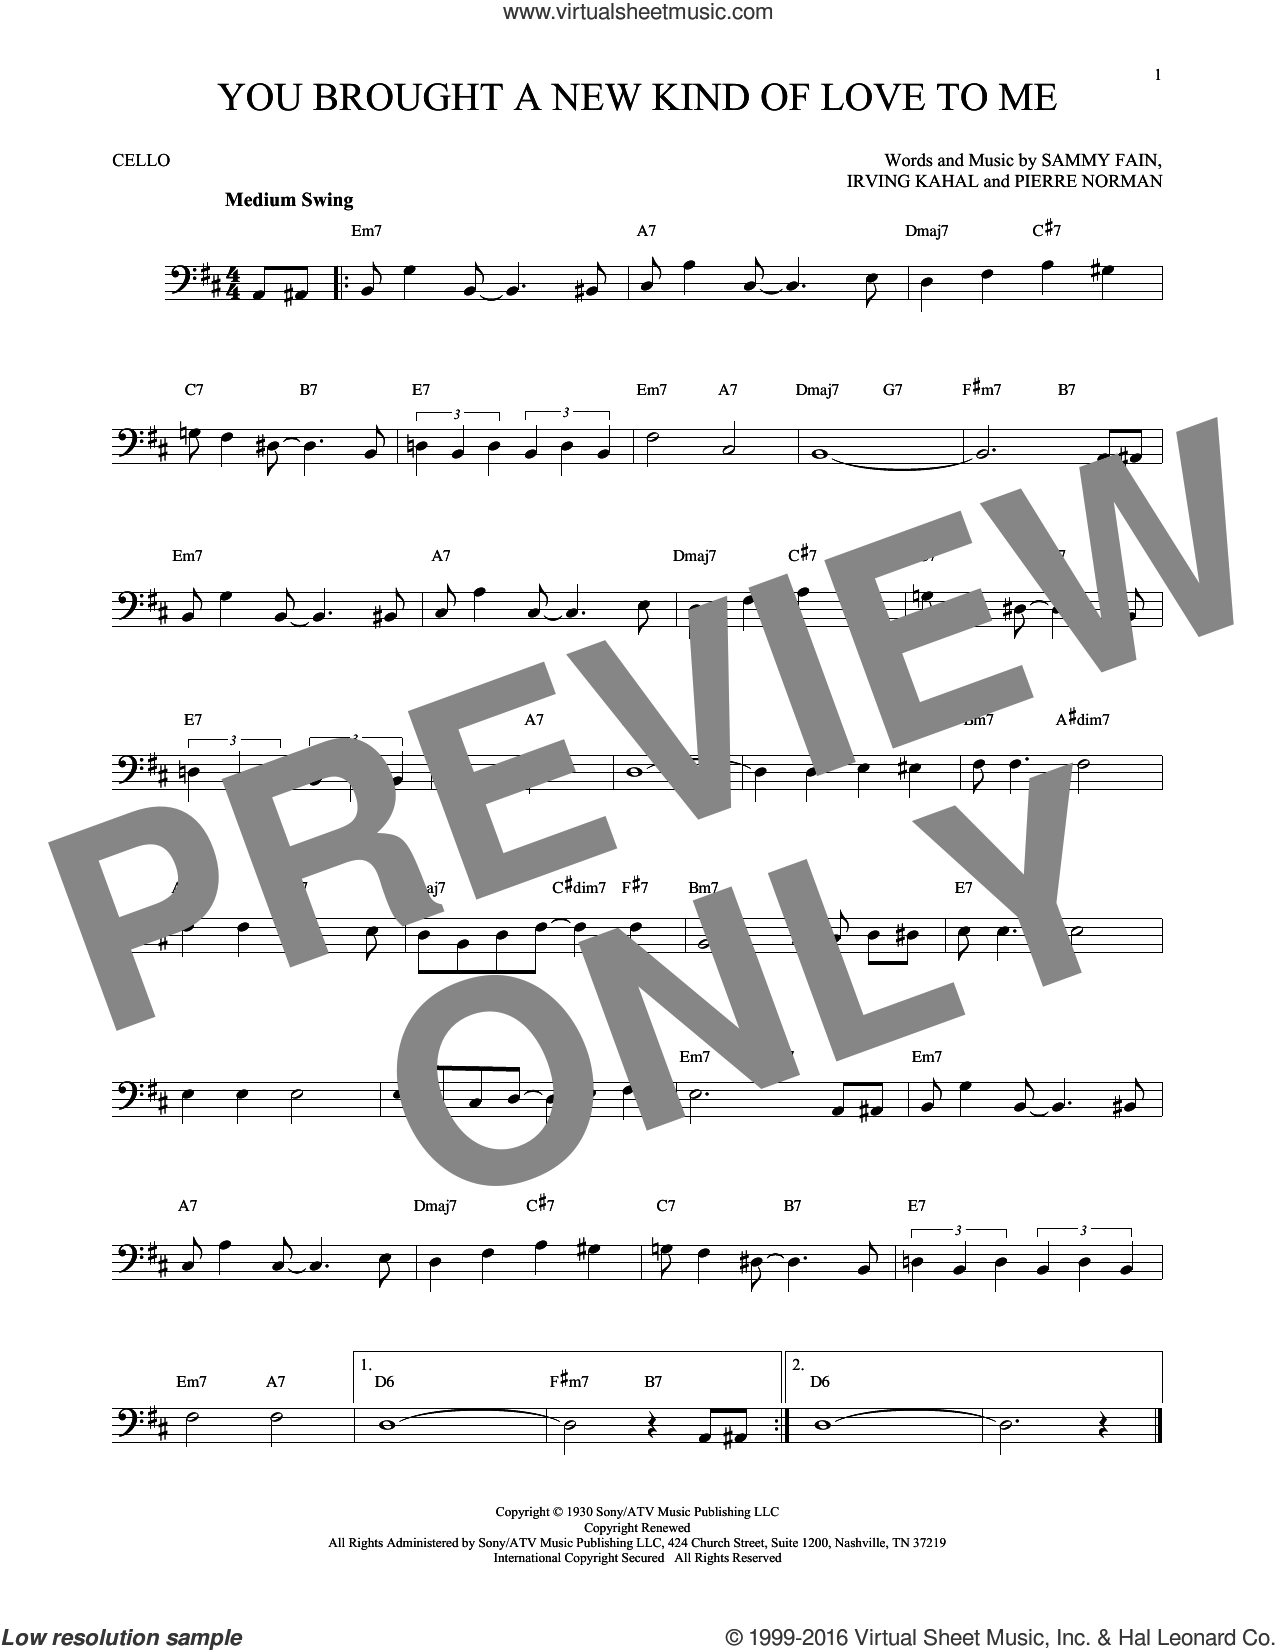 You Brought A New Kind Of Love To Me sheet music for cello solo by Sammy Fain and Irving Kahal. Score Image Preview.